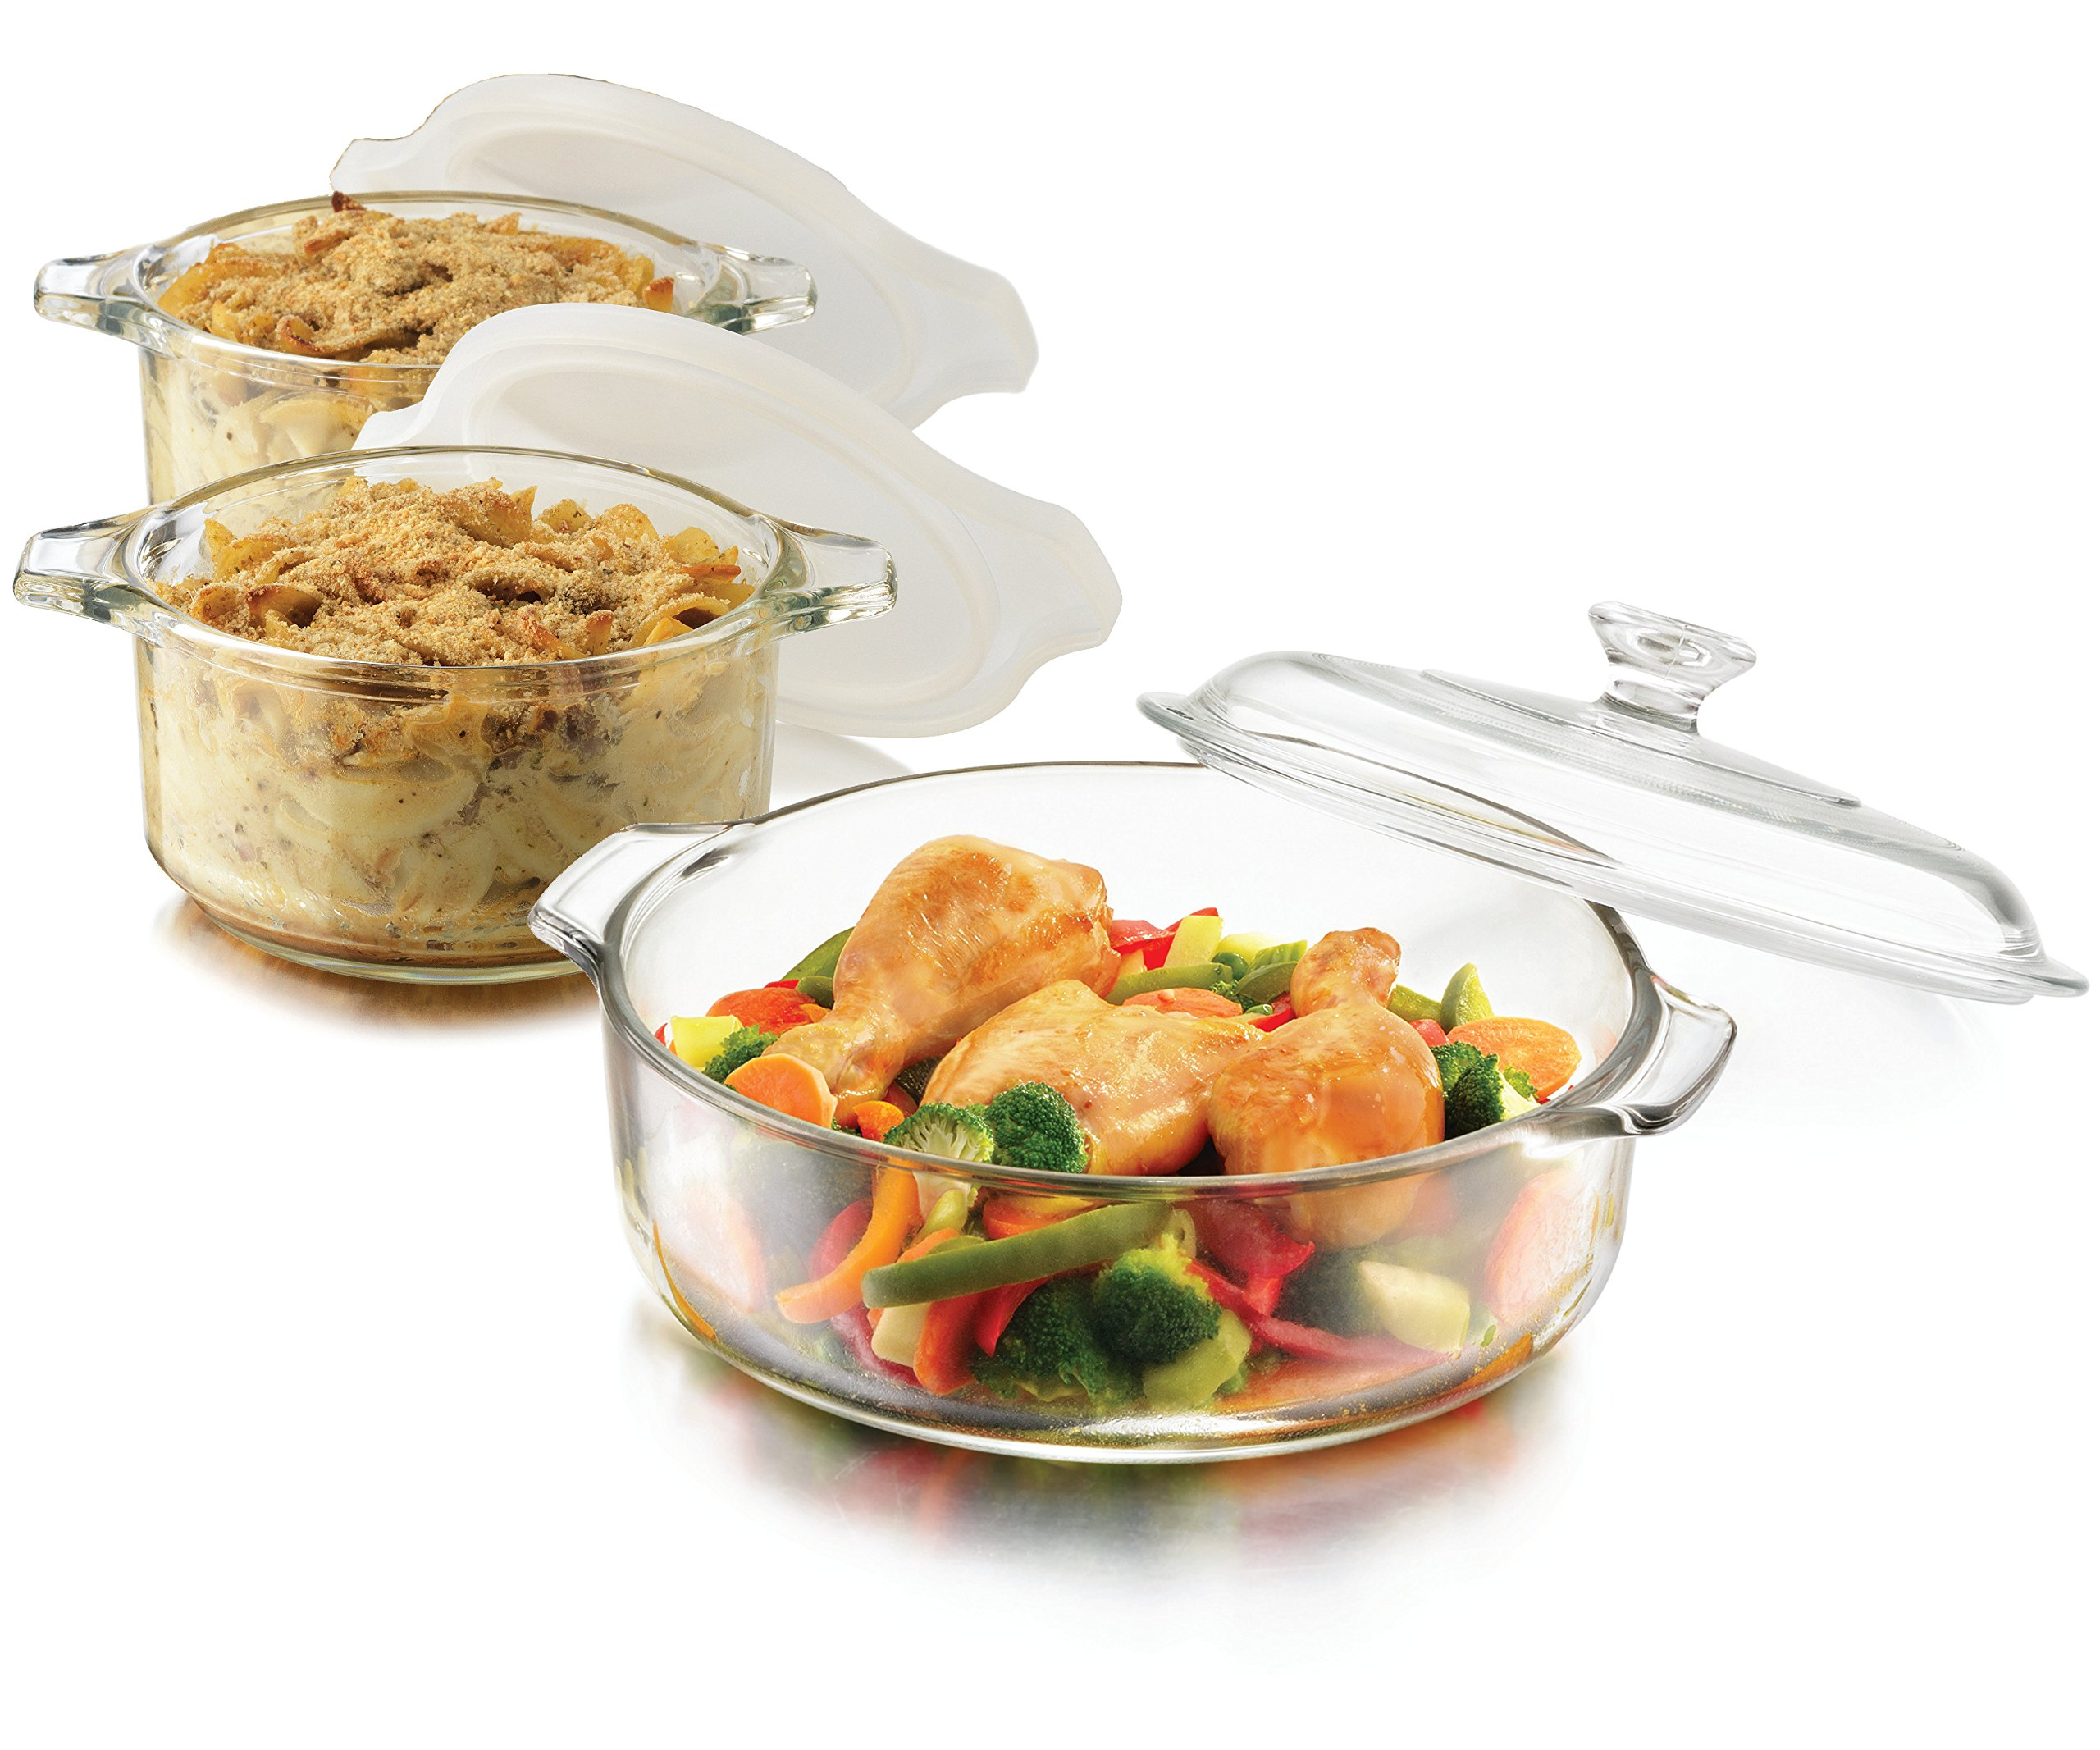 Libbey Casserole 6-pc set, (1) 10'' and Lid (2) 5'' and Lids